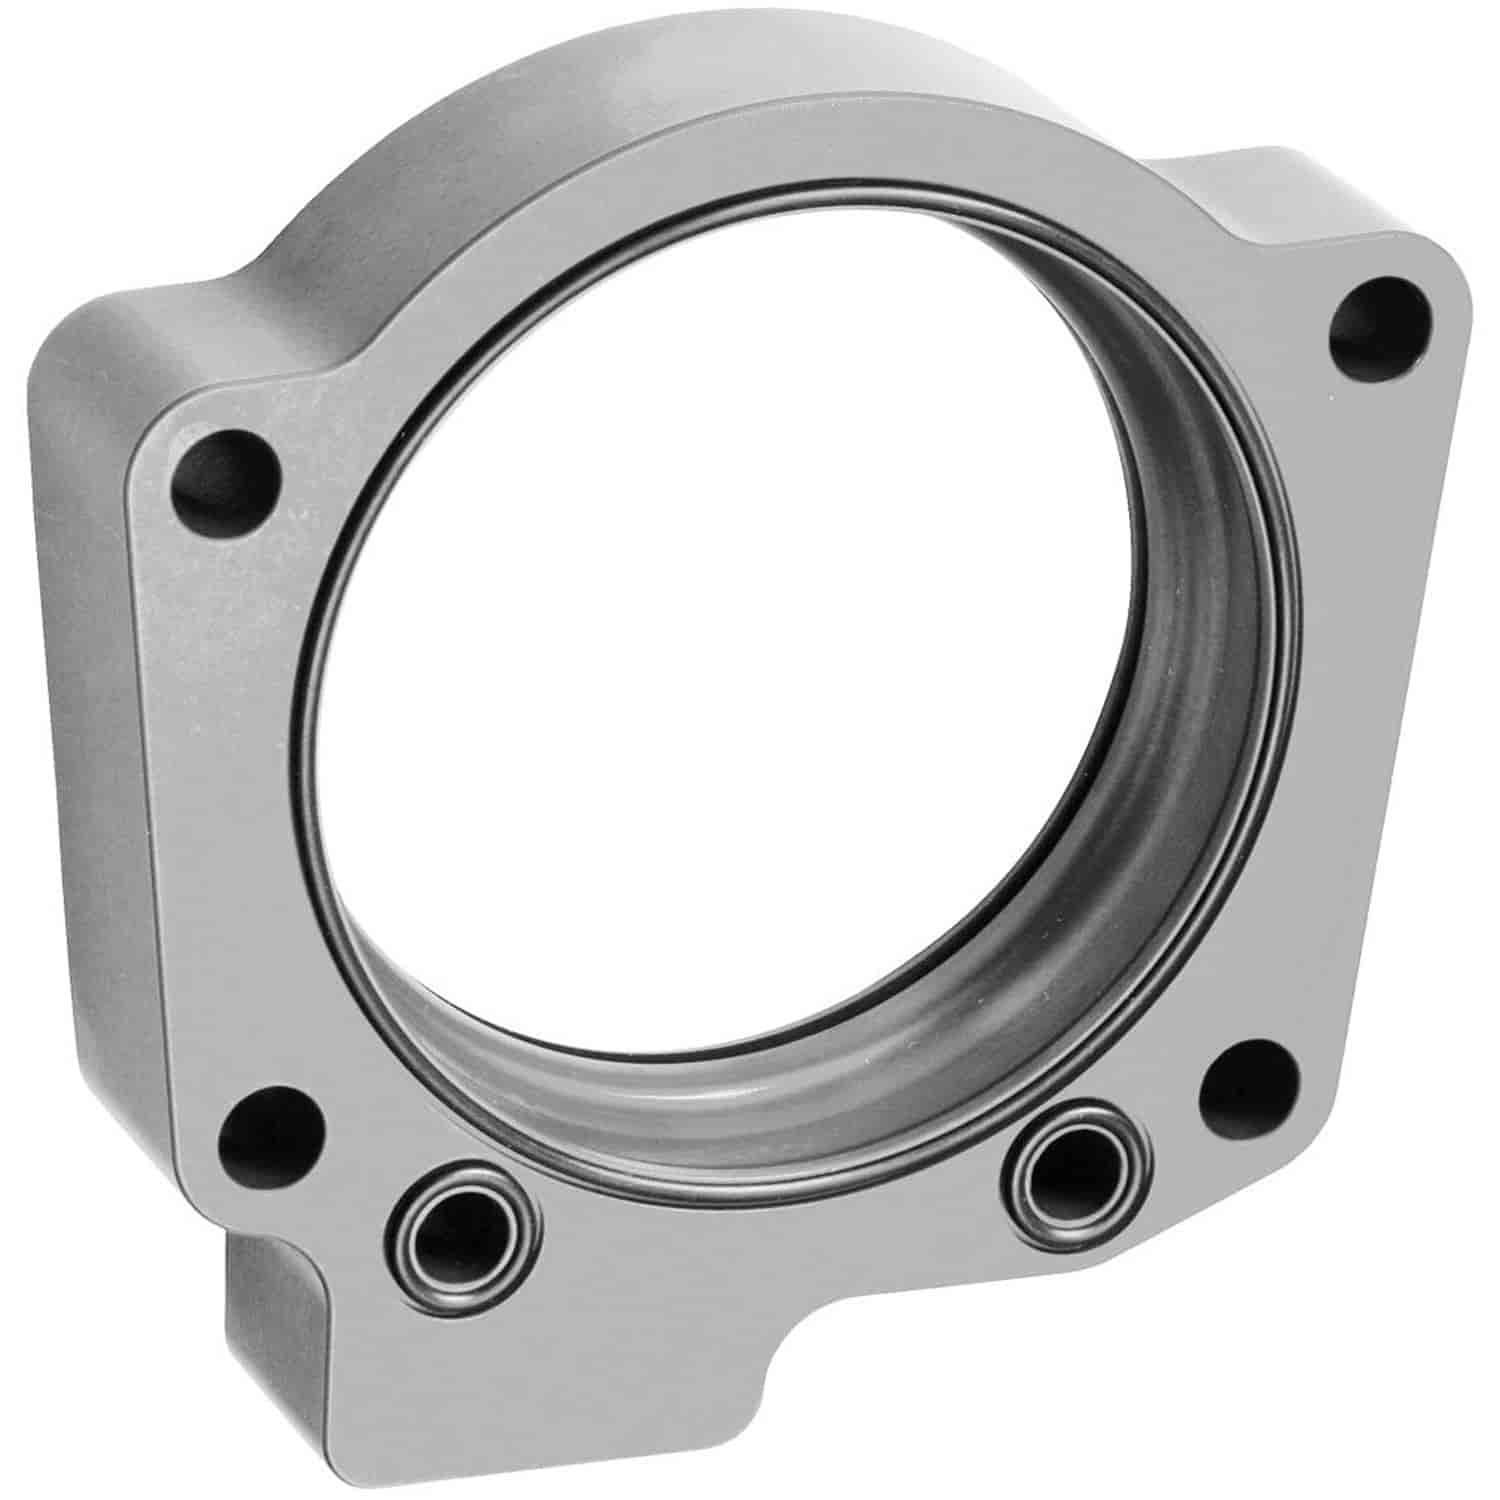 Hamburger's 3268 - Hamburger's Torque-Curve EFI Spacers